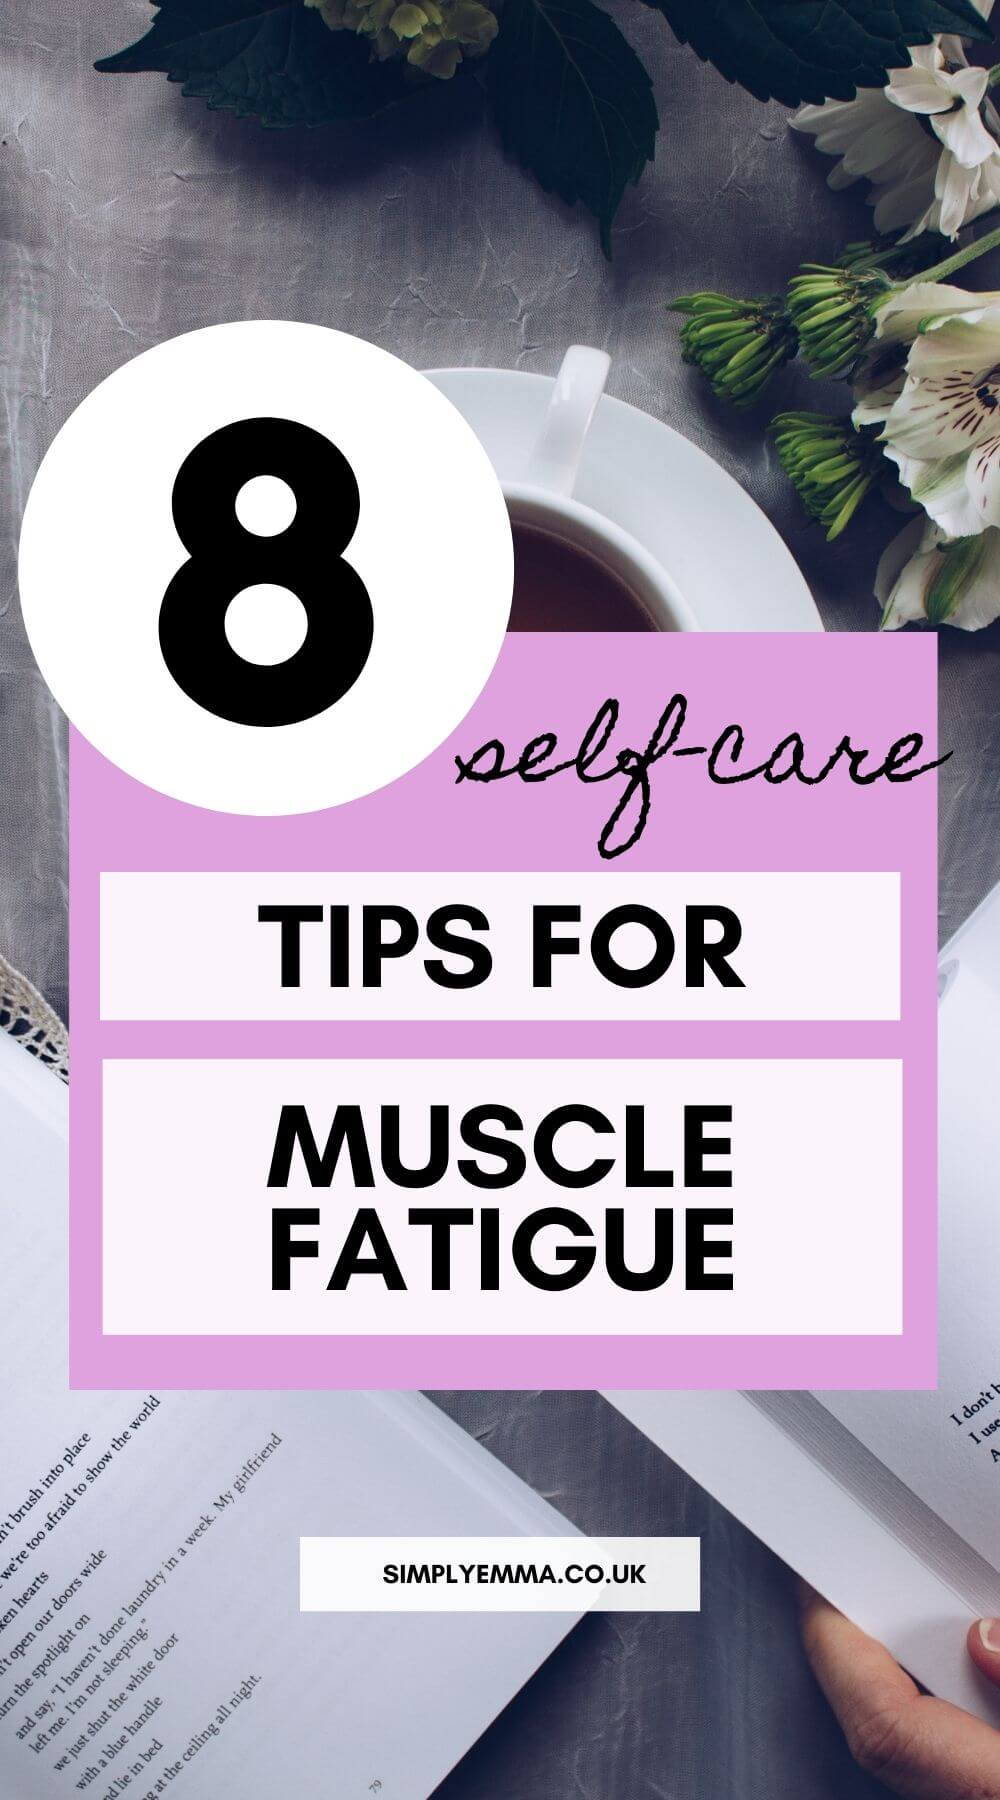 "A pinterest image with text ""8 self-care tips for muscle fatigue"" with an image of an open book, flowers and a cup of tea laying on a table."